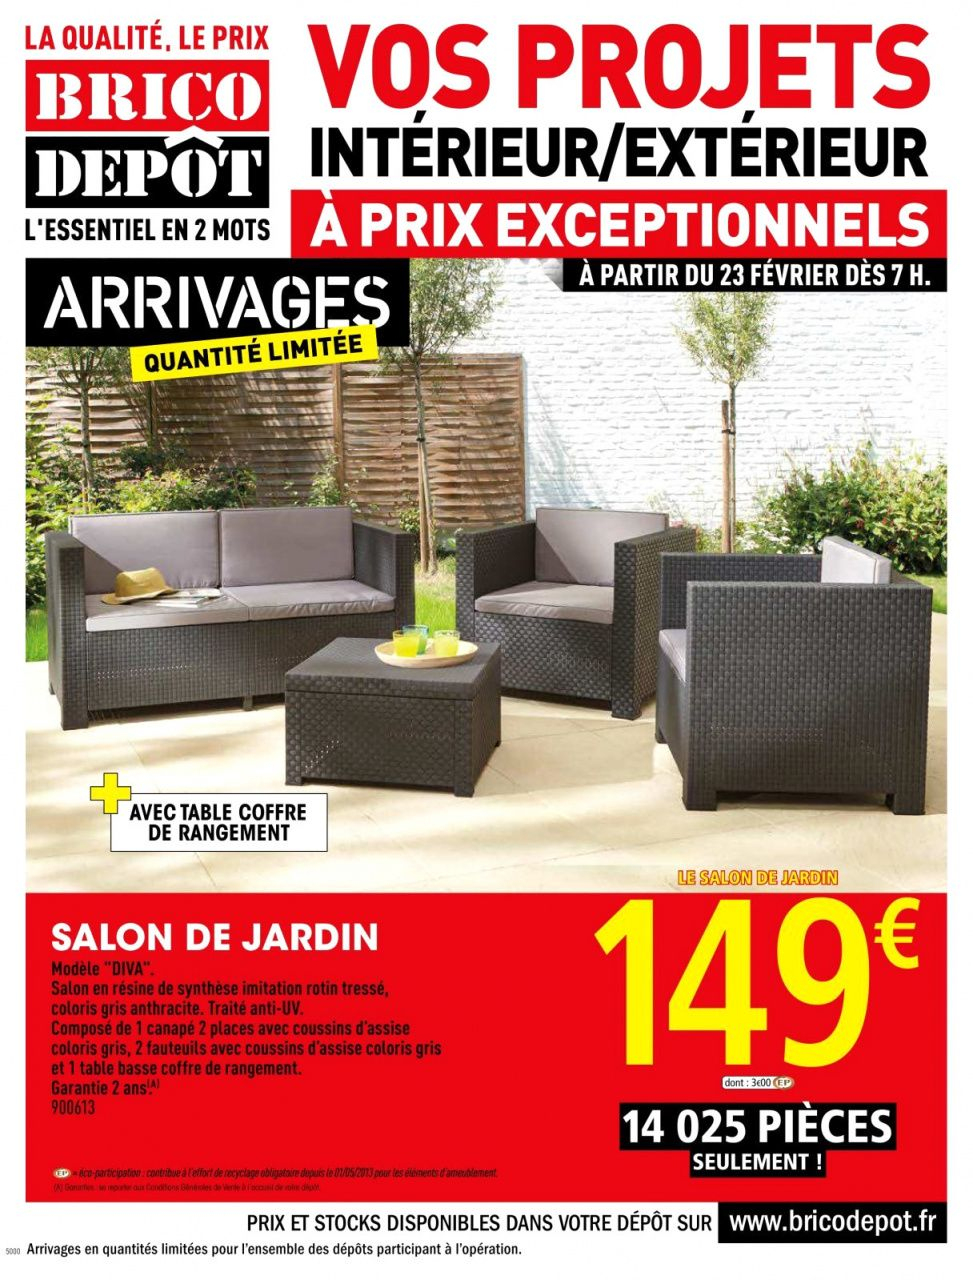 70 Salon De Jardin Allibert Brico Depot | Outdoor Furniture ... dedans Salon De Jardin Geant Casino